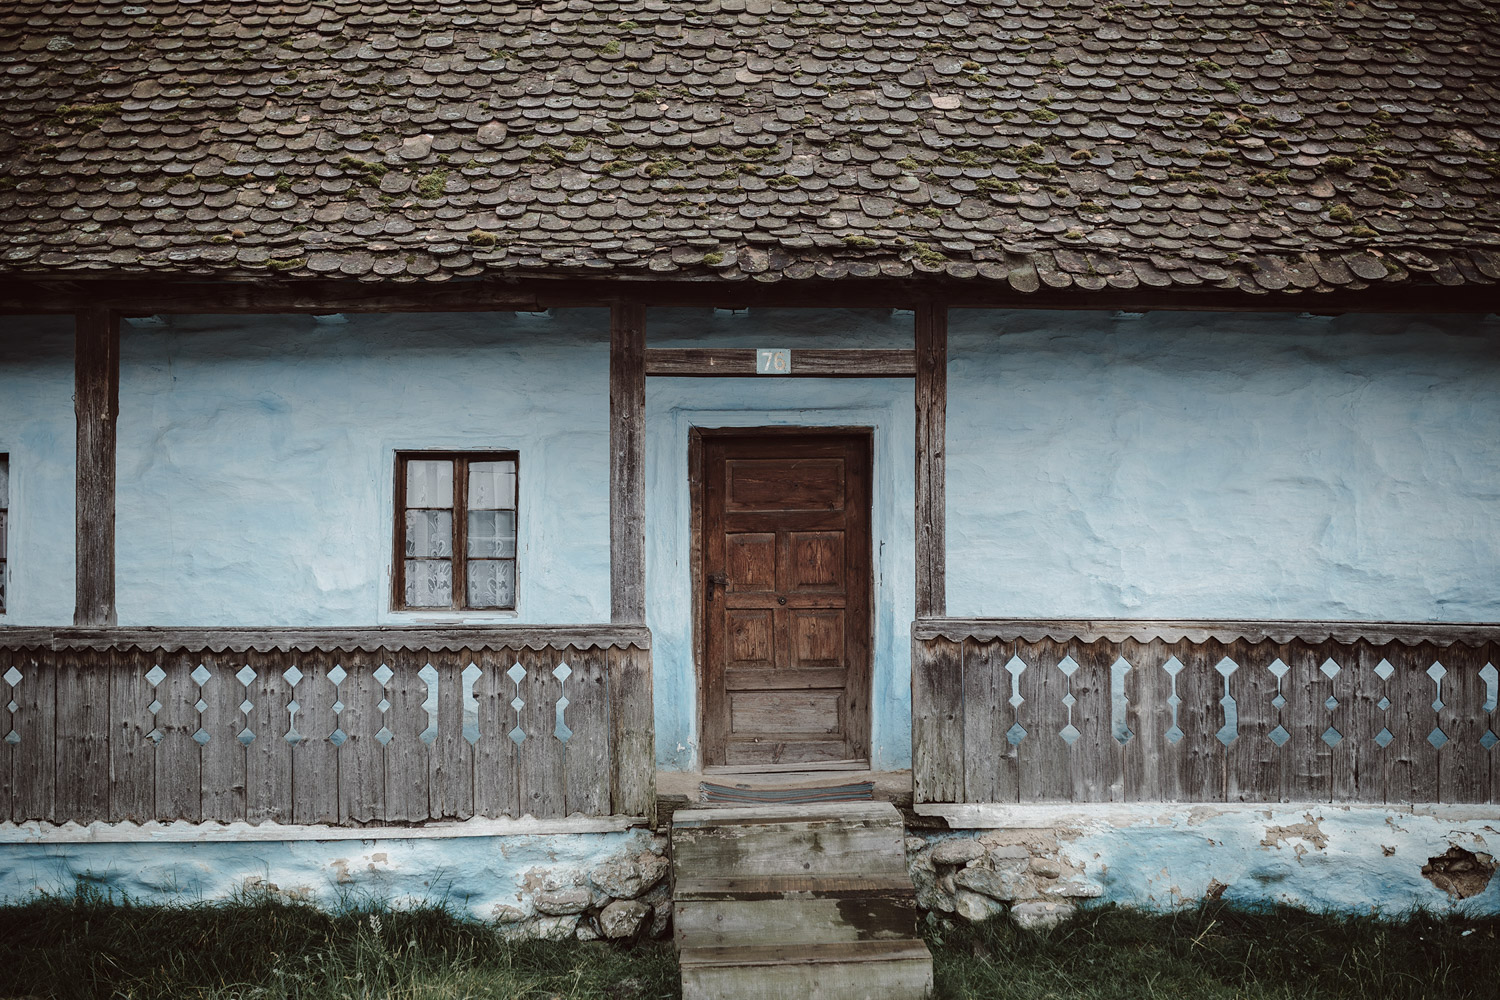 Romanian villages